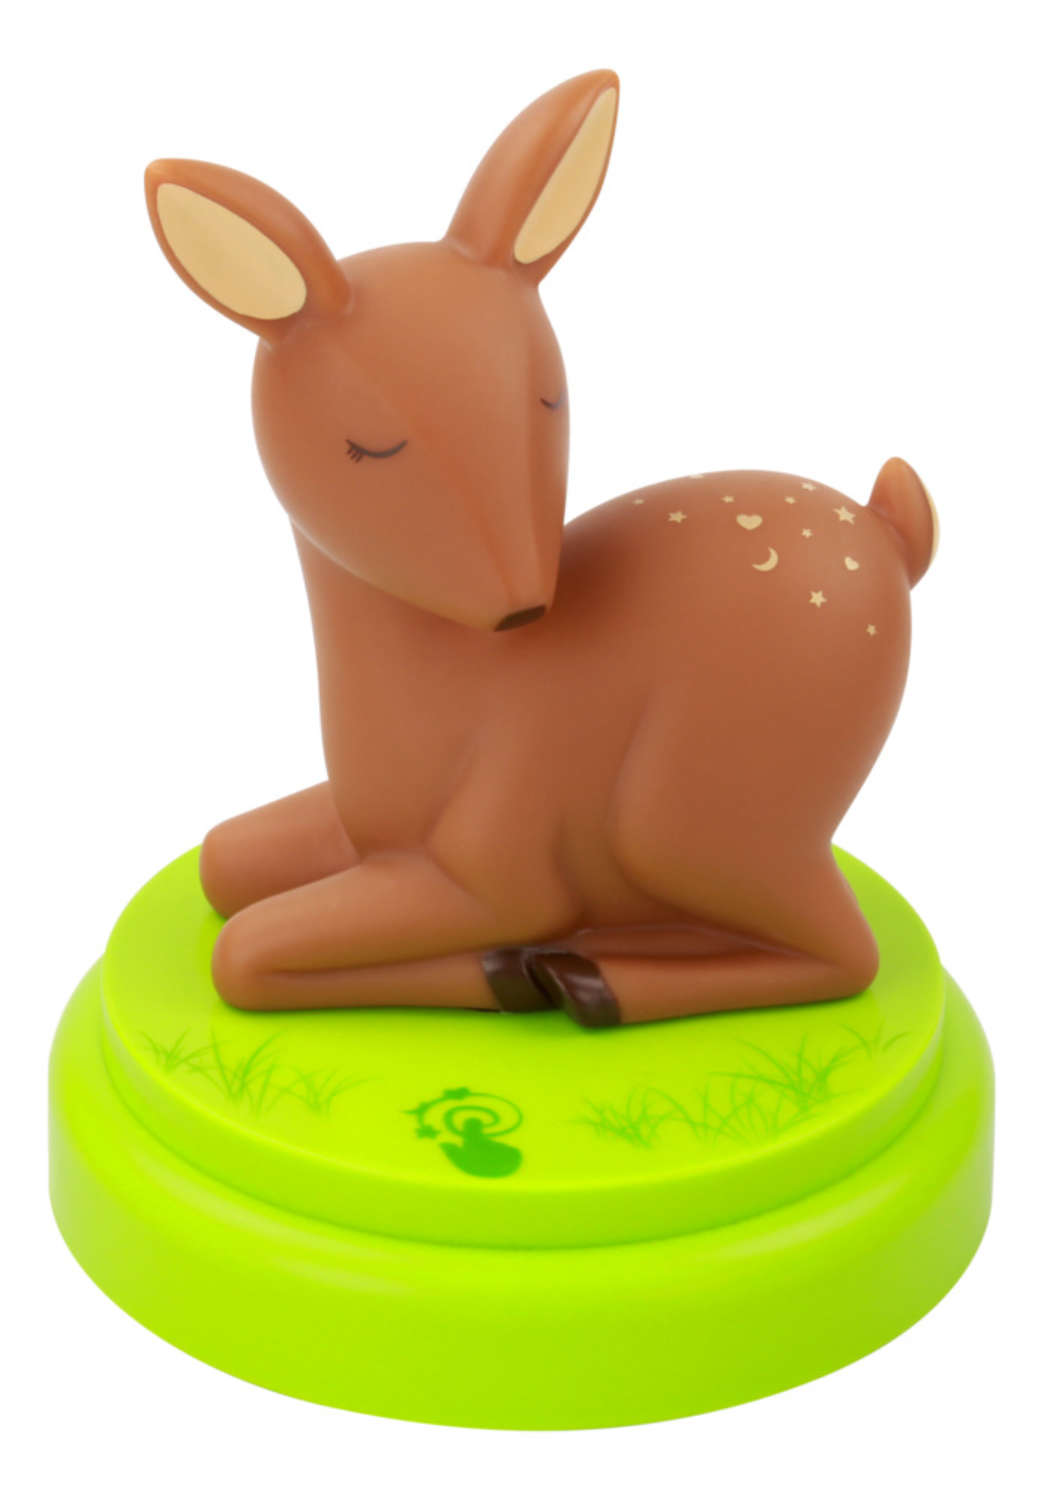 Deer mobile nightlight